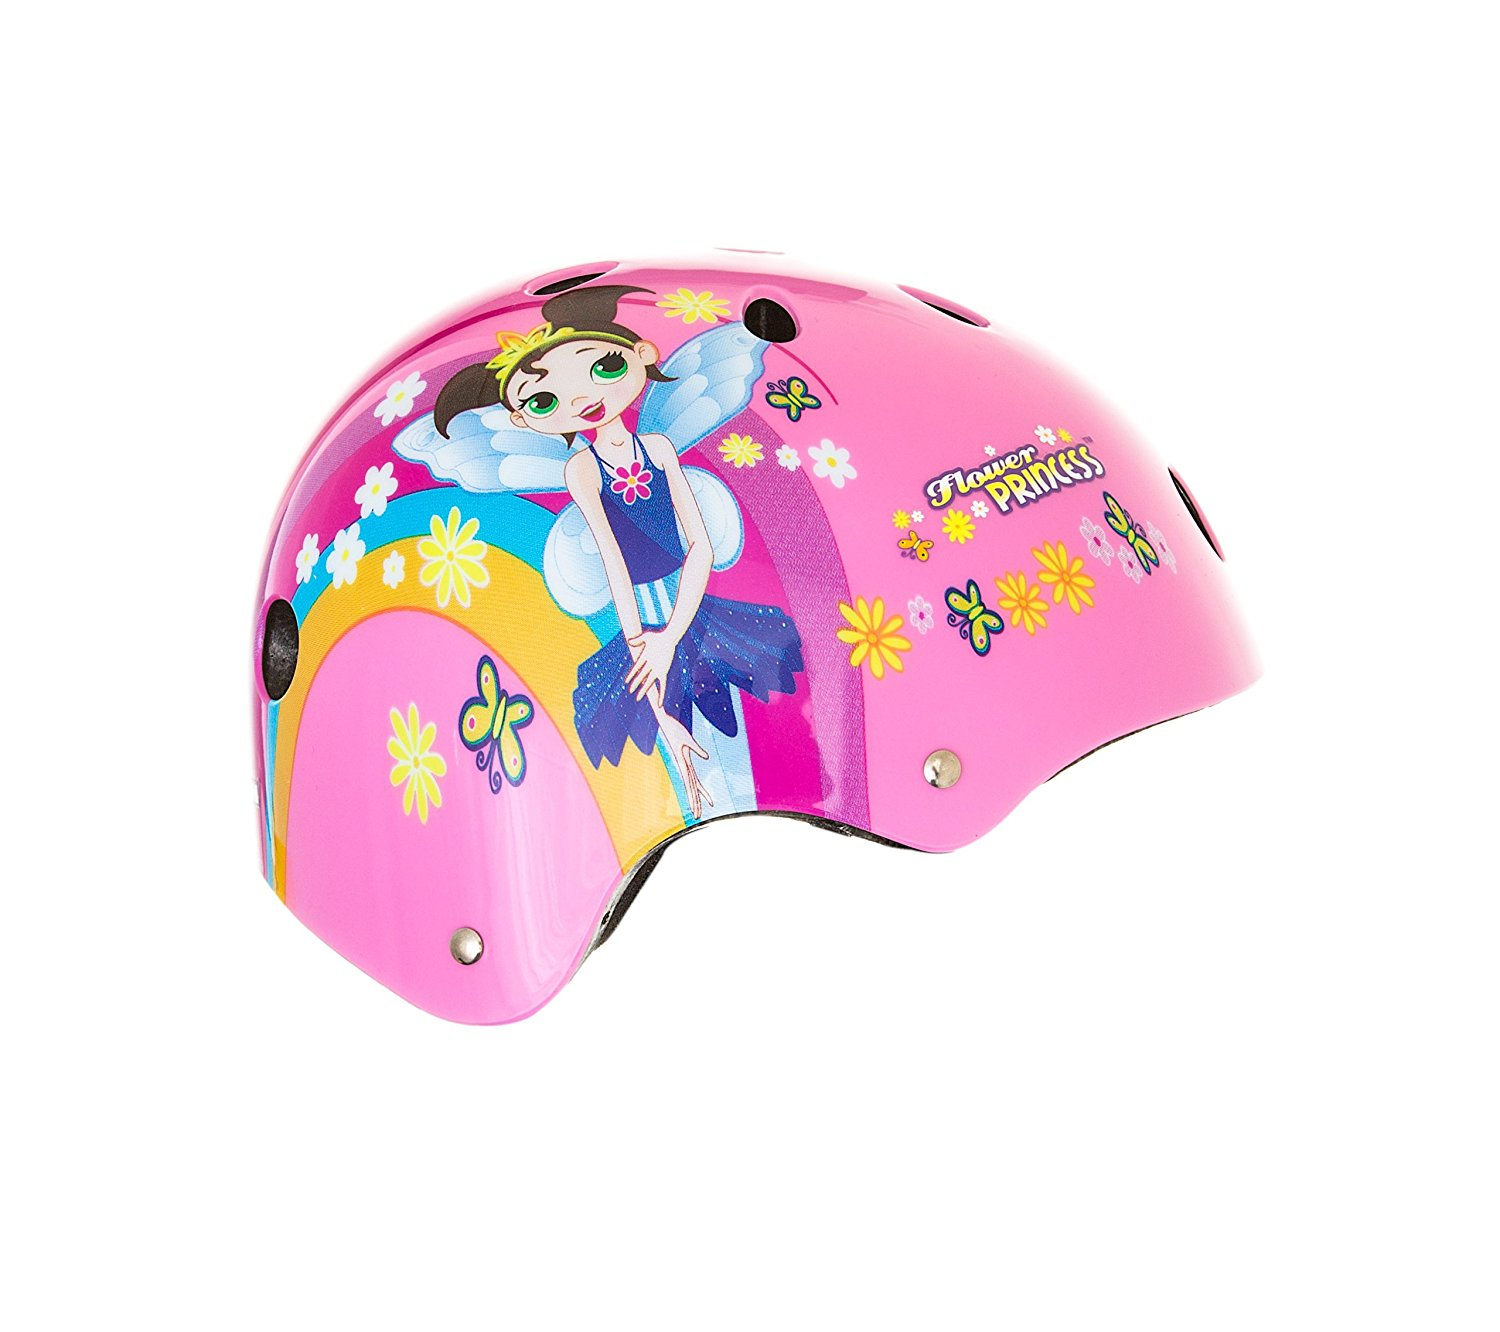 Flower Princess Pink Helmet 11-Vent Multi-Sport Skateboard and BMX, Youth Size Small..., By Titan Ship from US by